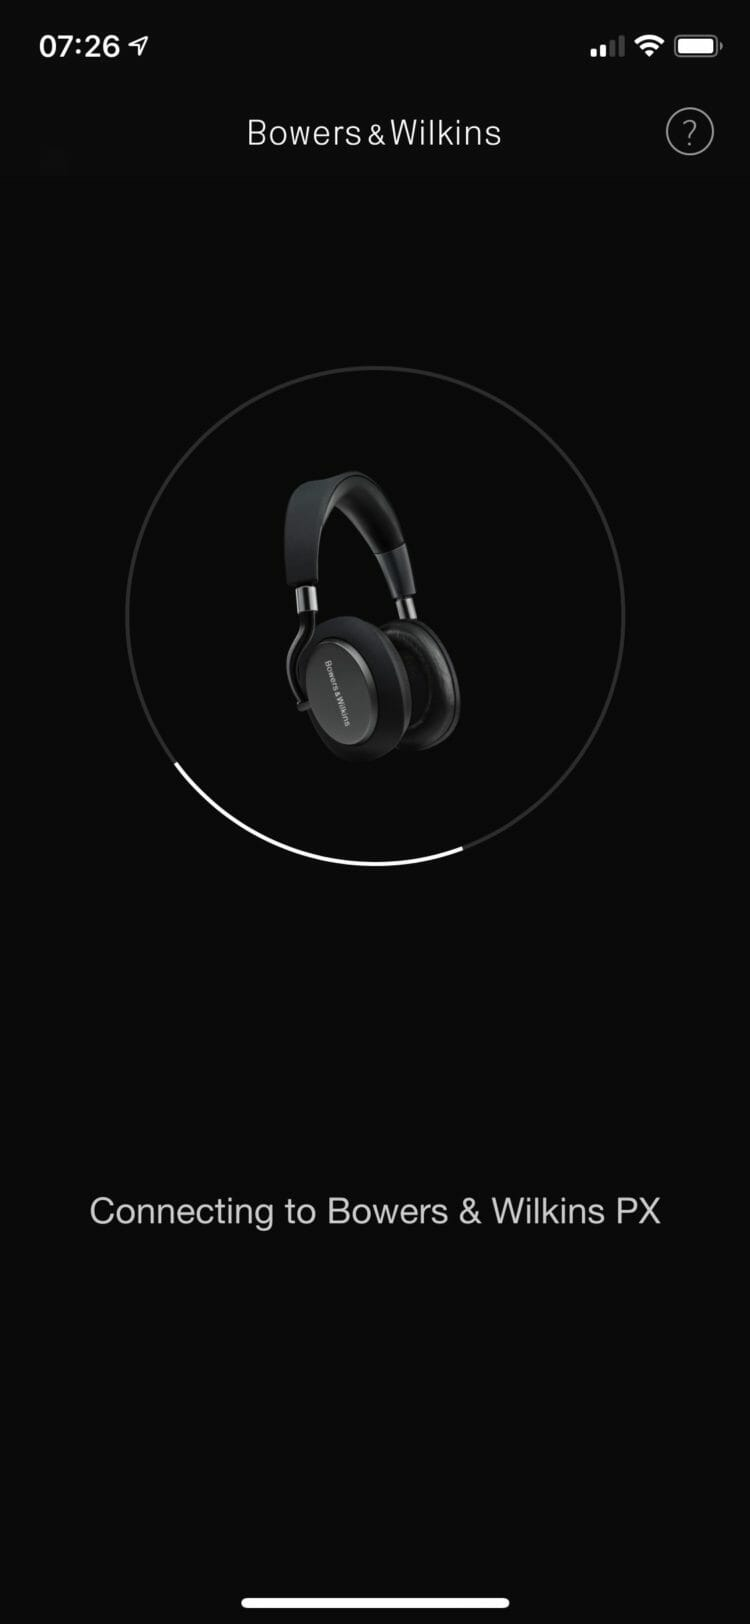 Bowers & Wilkins Headphones app